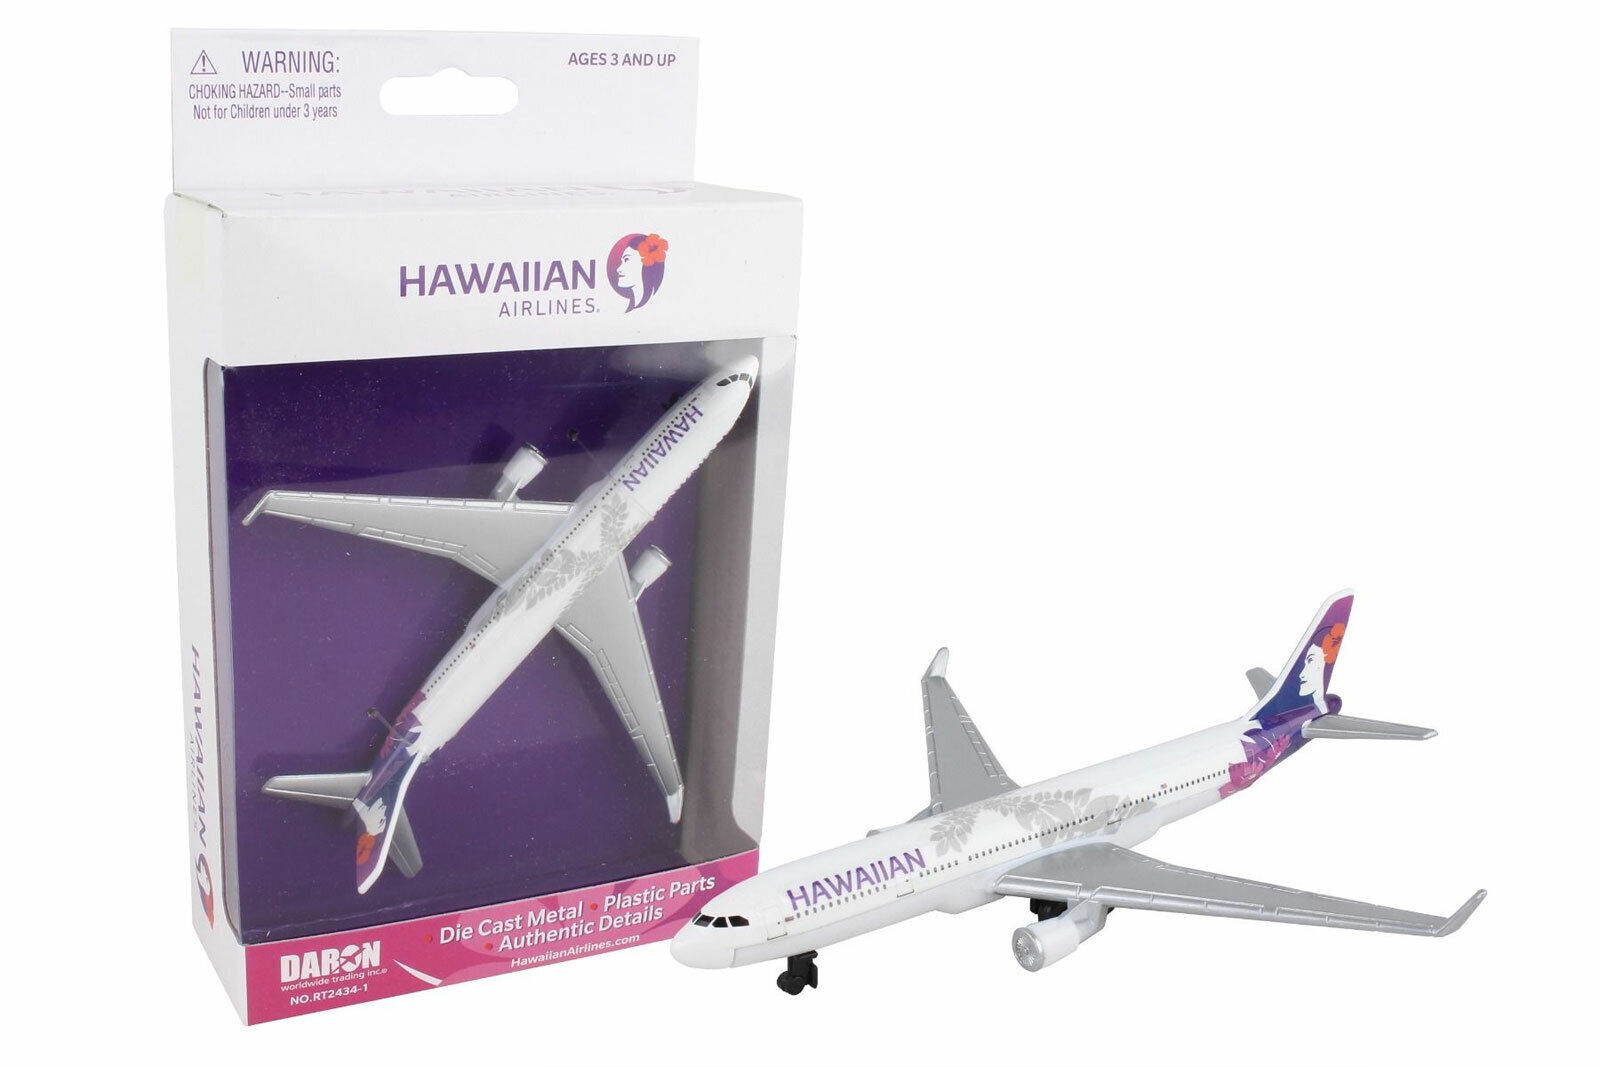 Diecast Metal Aircraft Toy Commercial Airplane Copa Airlines